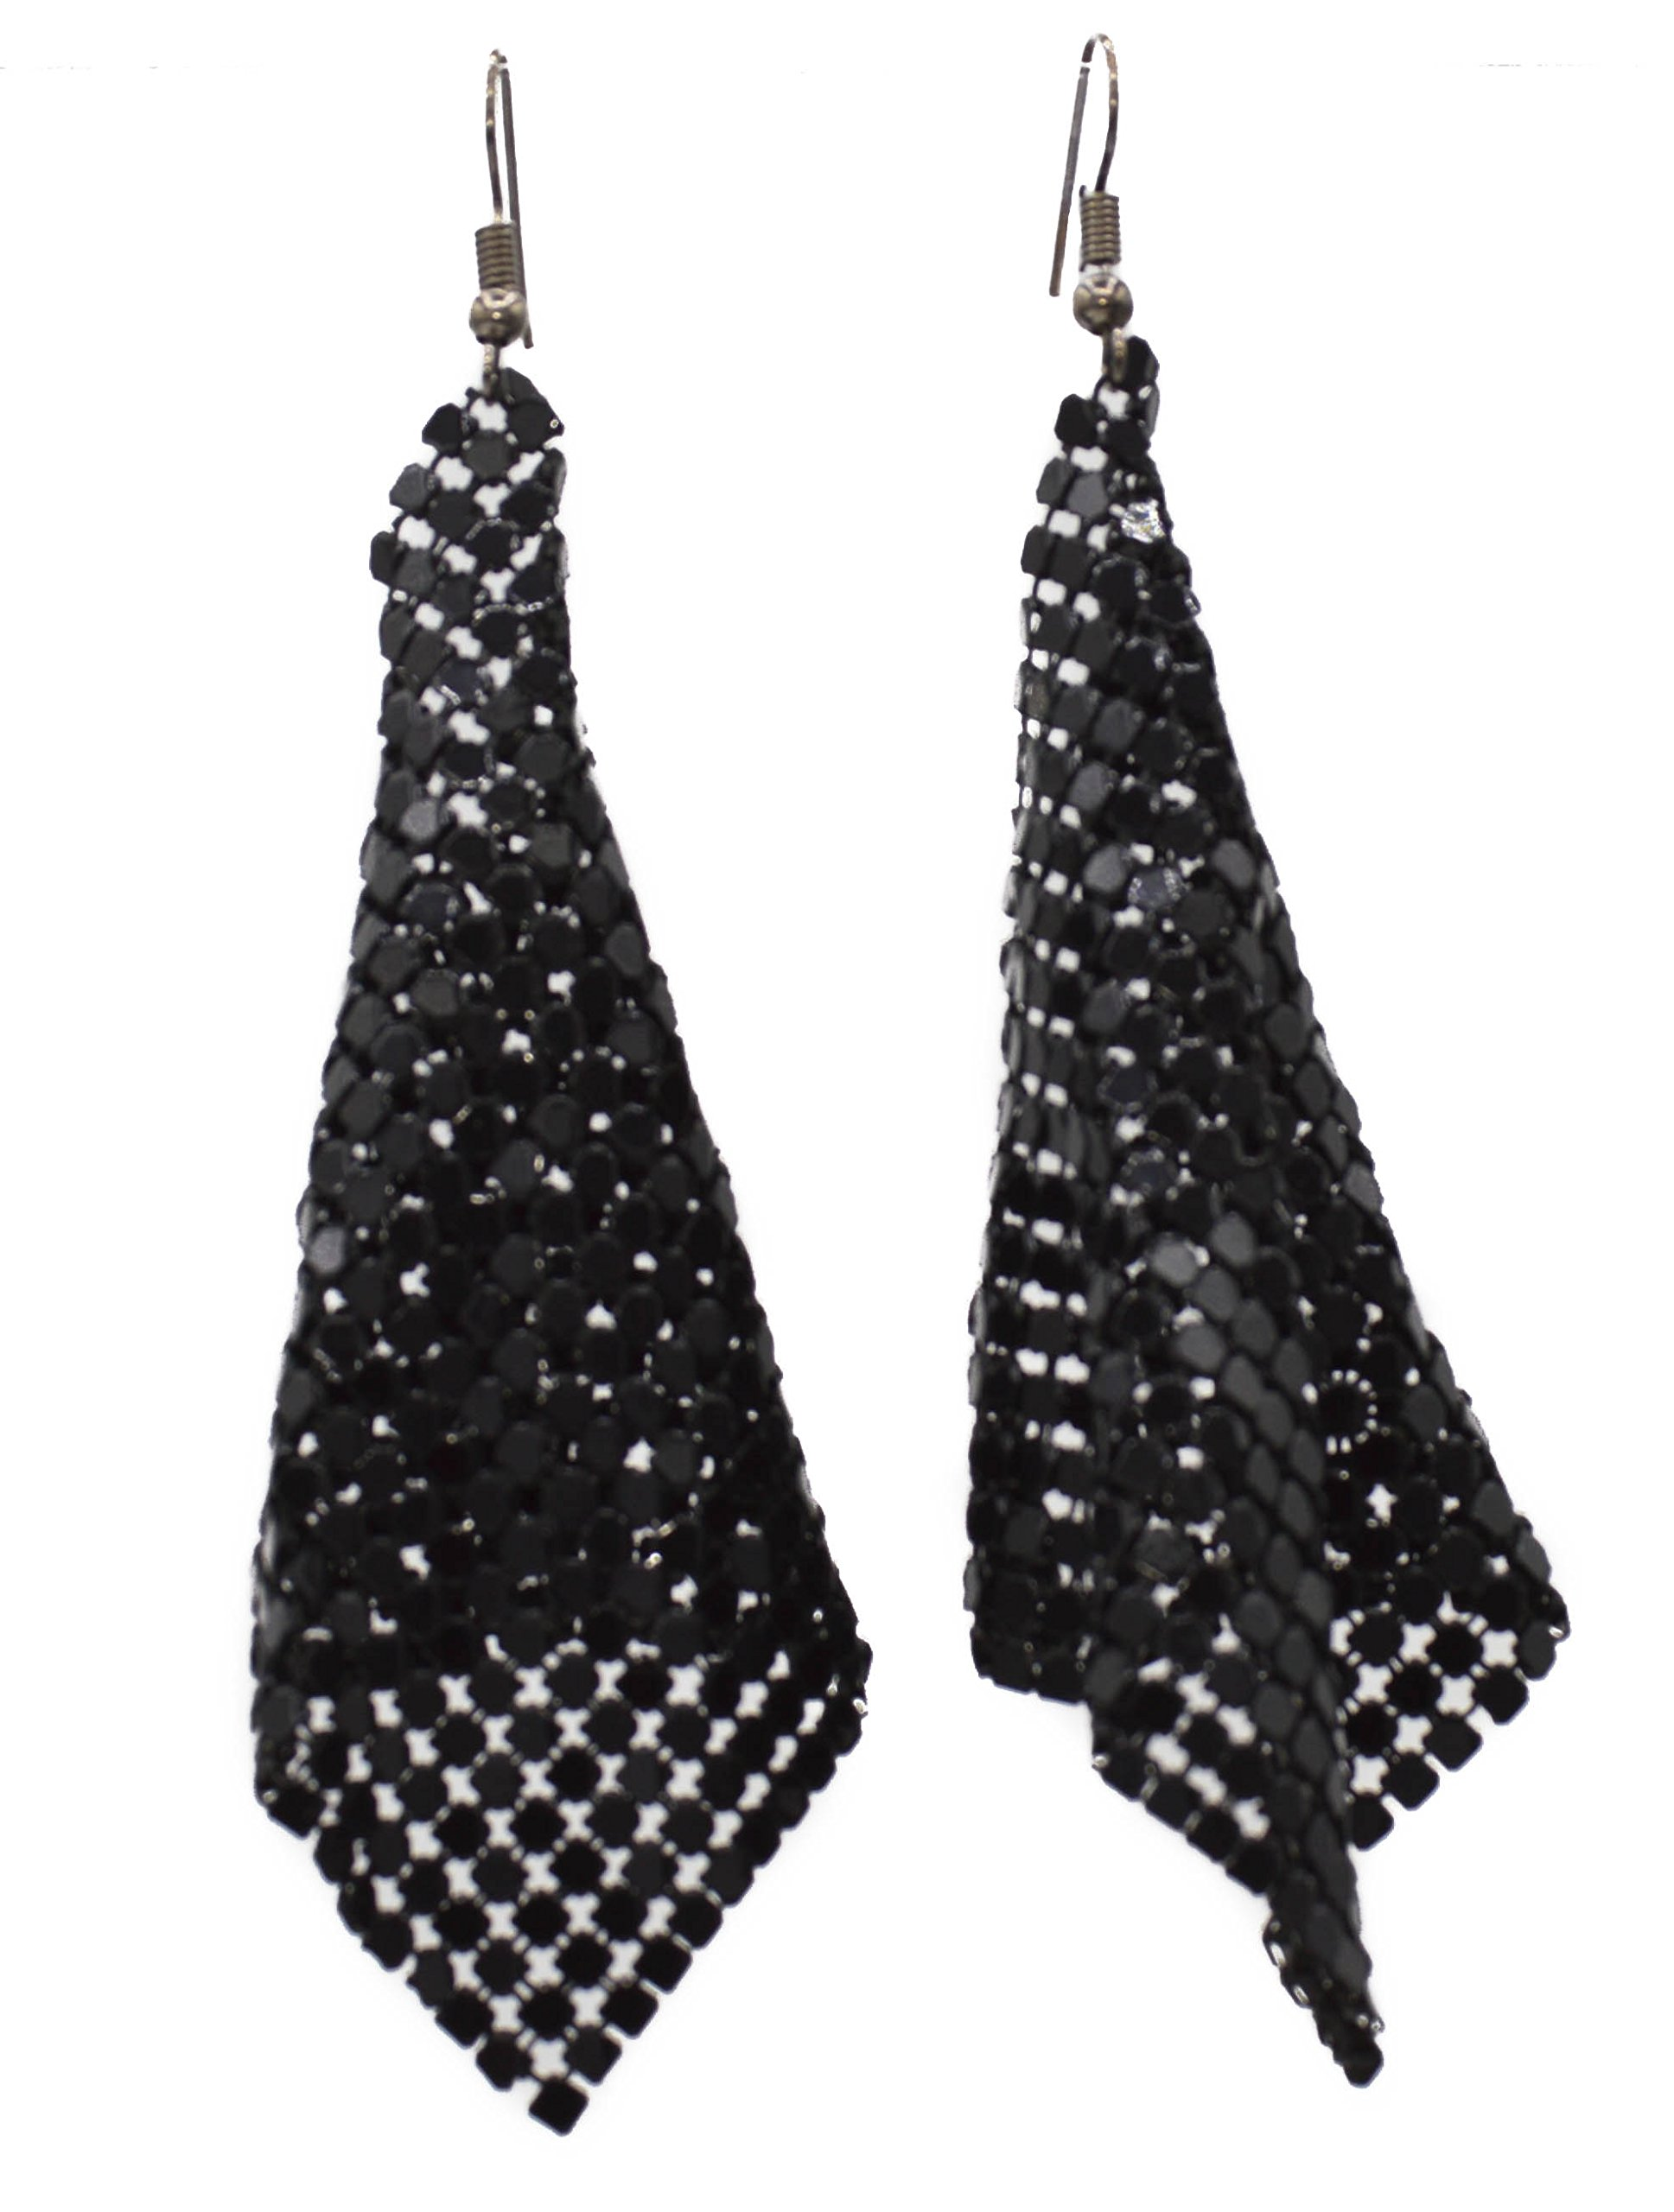 Mesh Dangle Earrings Available in 3 Colors (Gold, Silver, Black) (base)